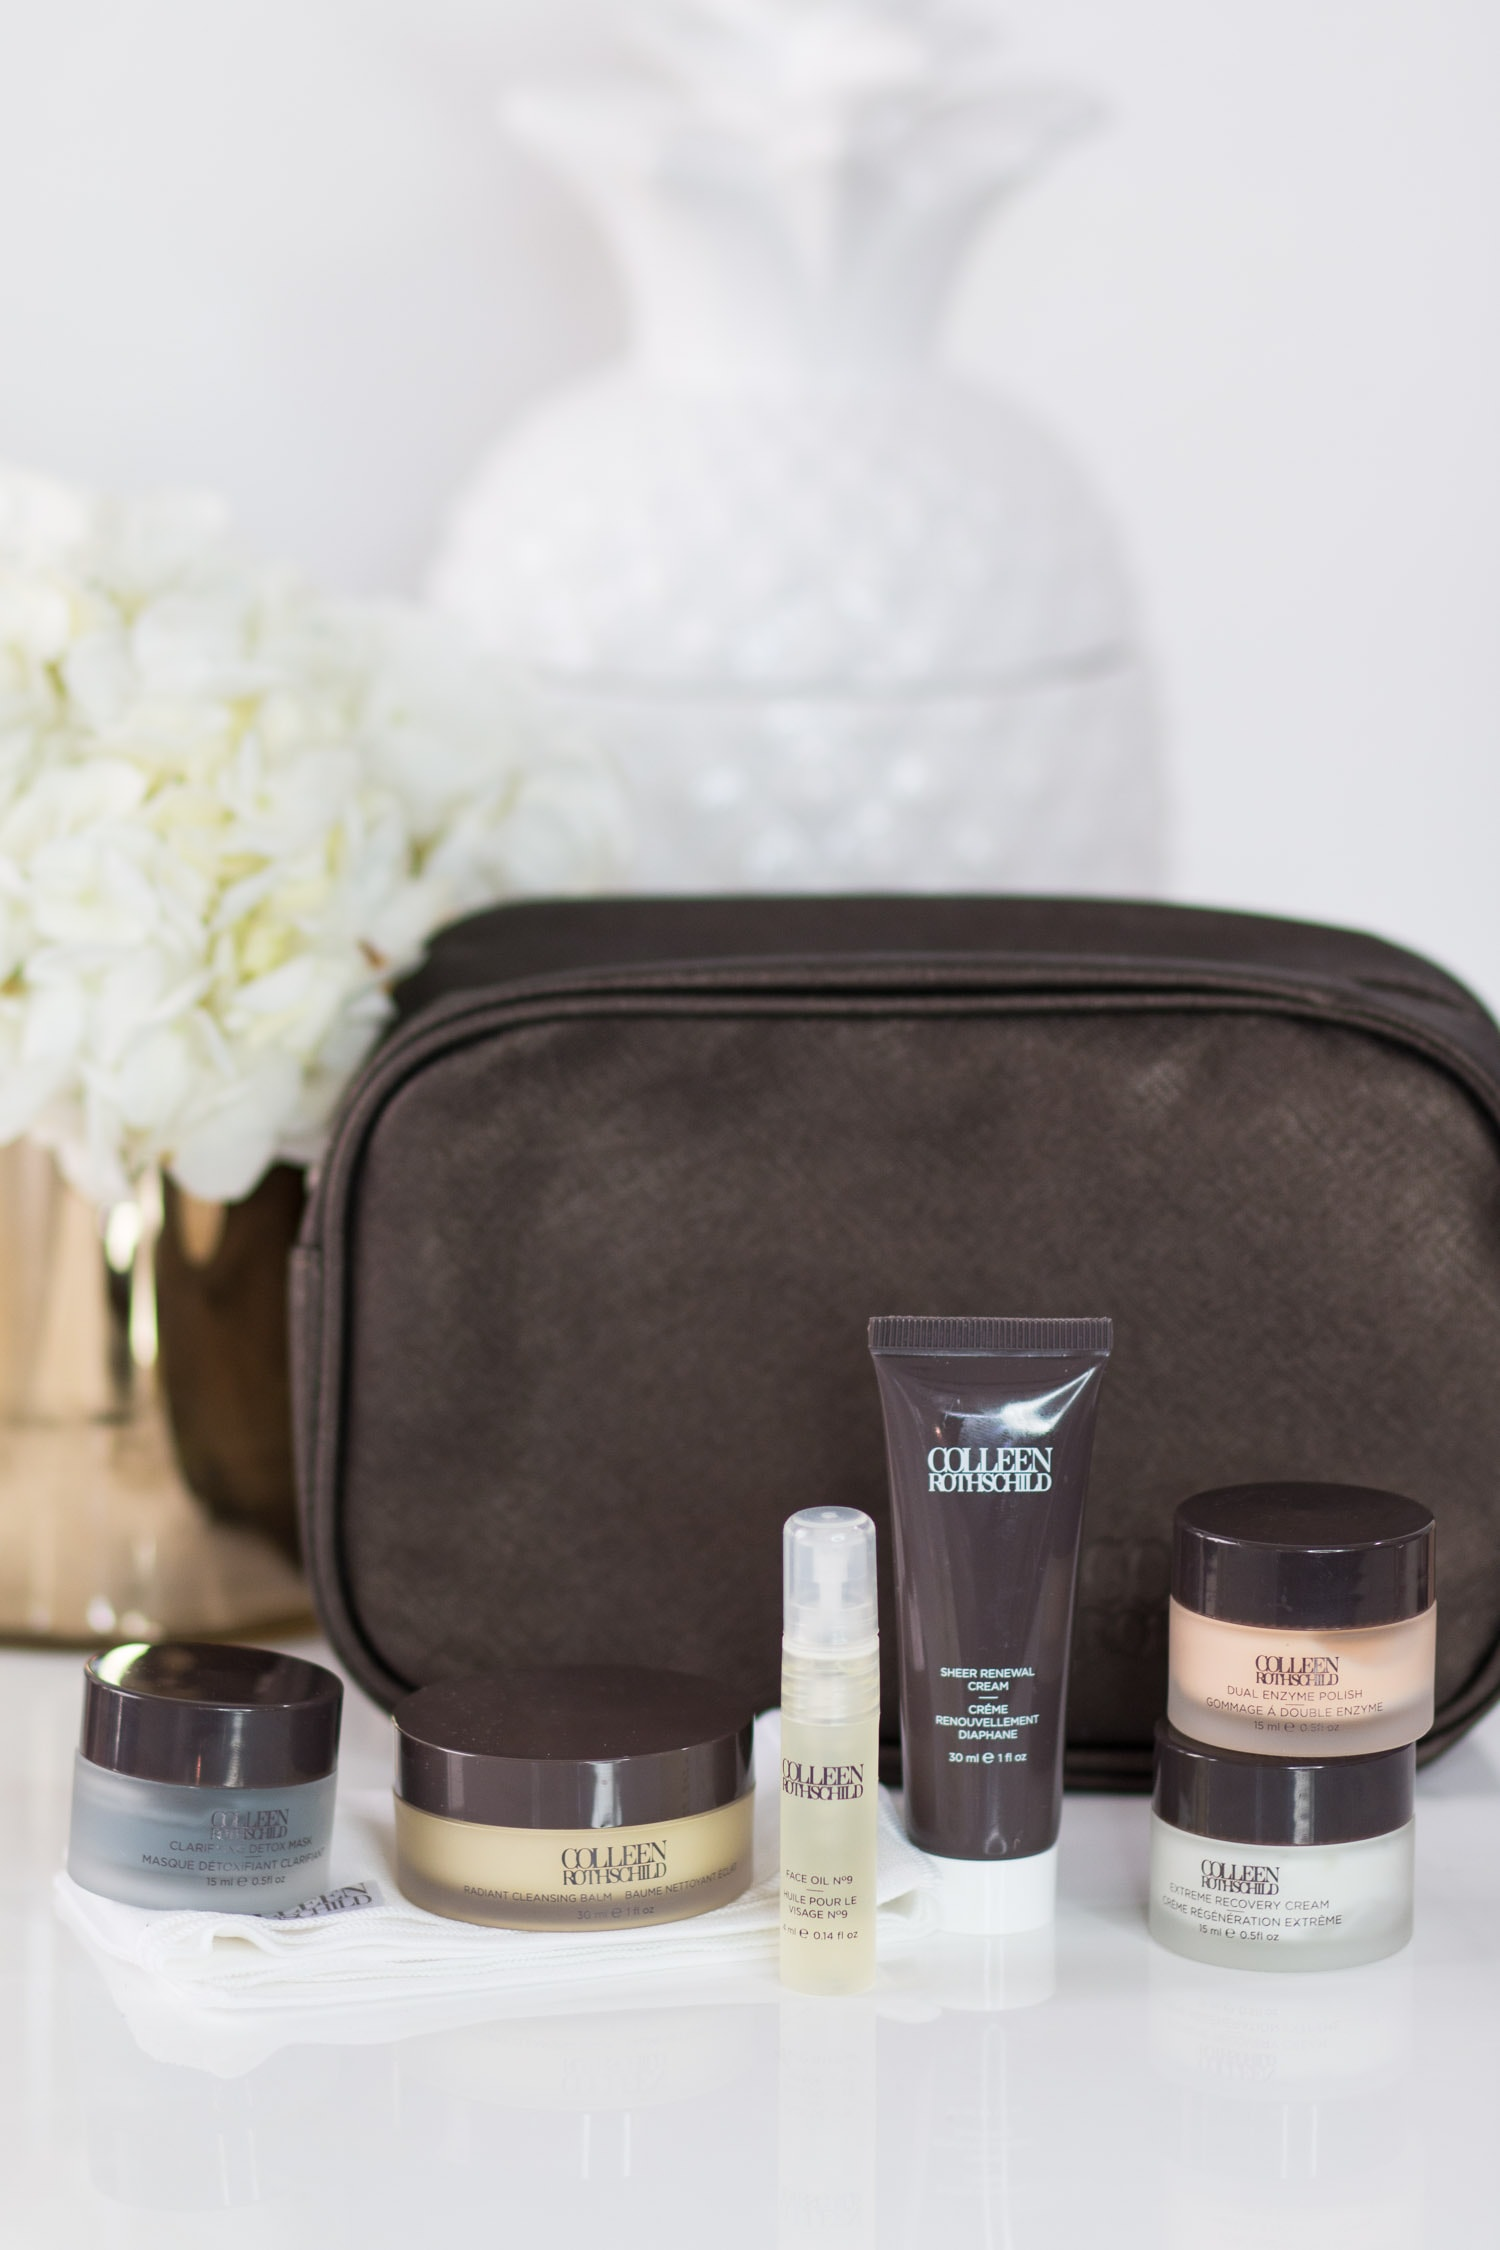 The best skincare kit for travel + a review of Colleen Rothschild Discovery Collection travel set | The seven skin care products that every woman needs in her beauty routine + the best skin care products from Colleen Rothschild Beauty with Orlando, Florida beauty blogger Ashley Brooke Nicholas